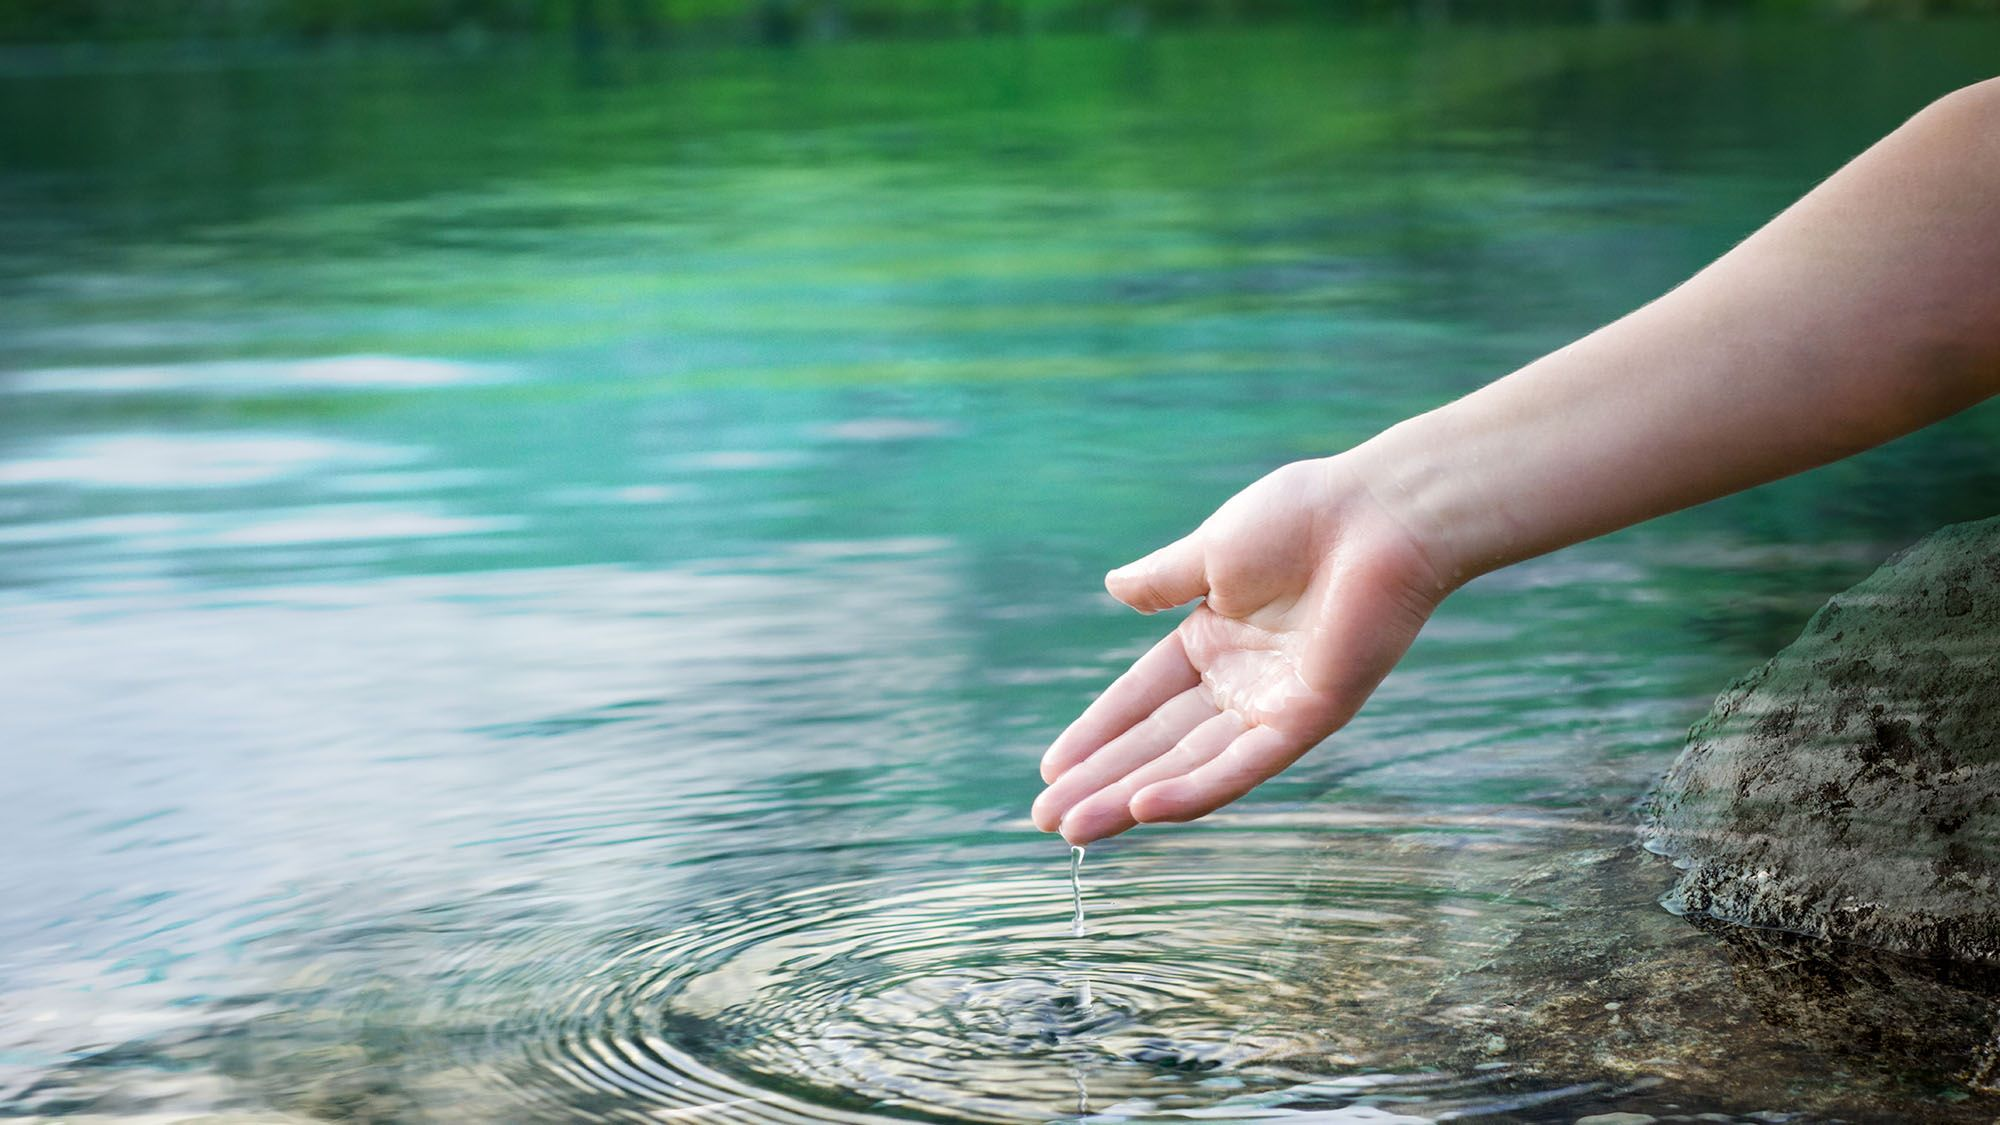 Water dropping from a hand in nature